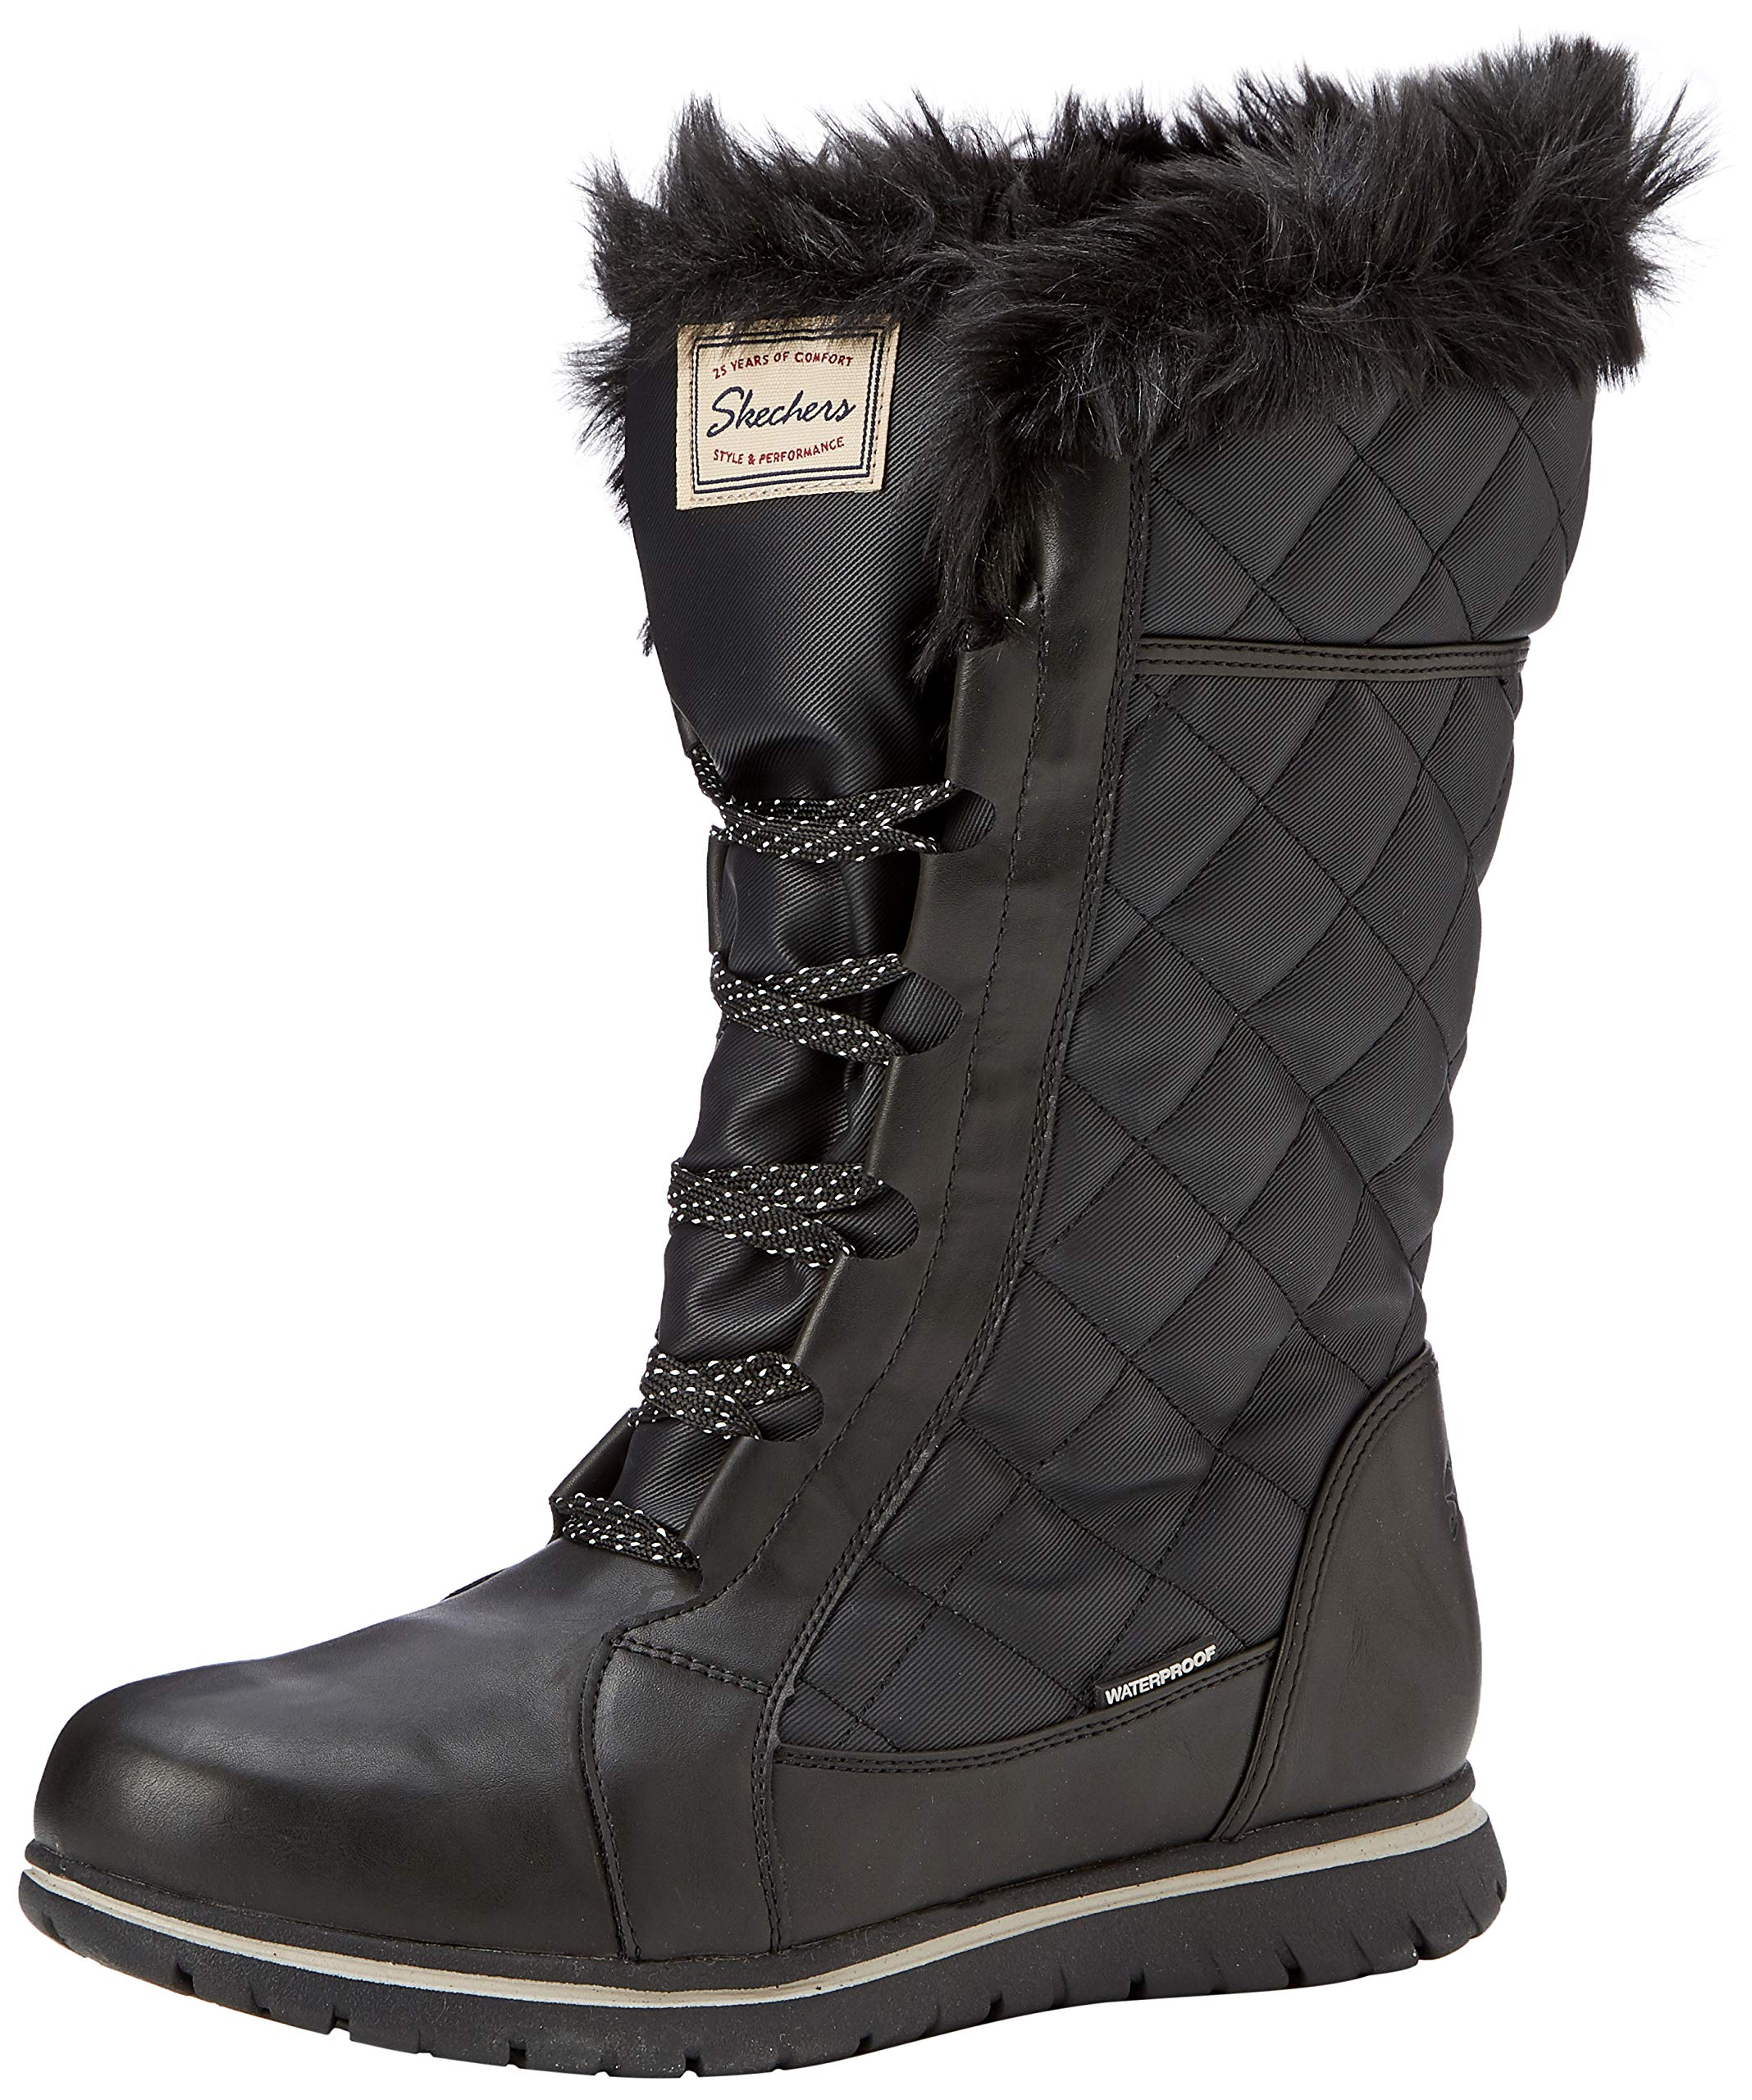 Blk40 FemmeNoirblack Skechers Motardes Eu EstateBottes oBQdCxWer